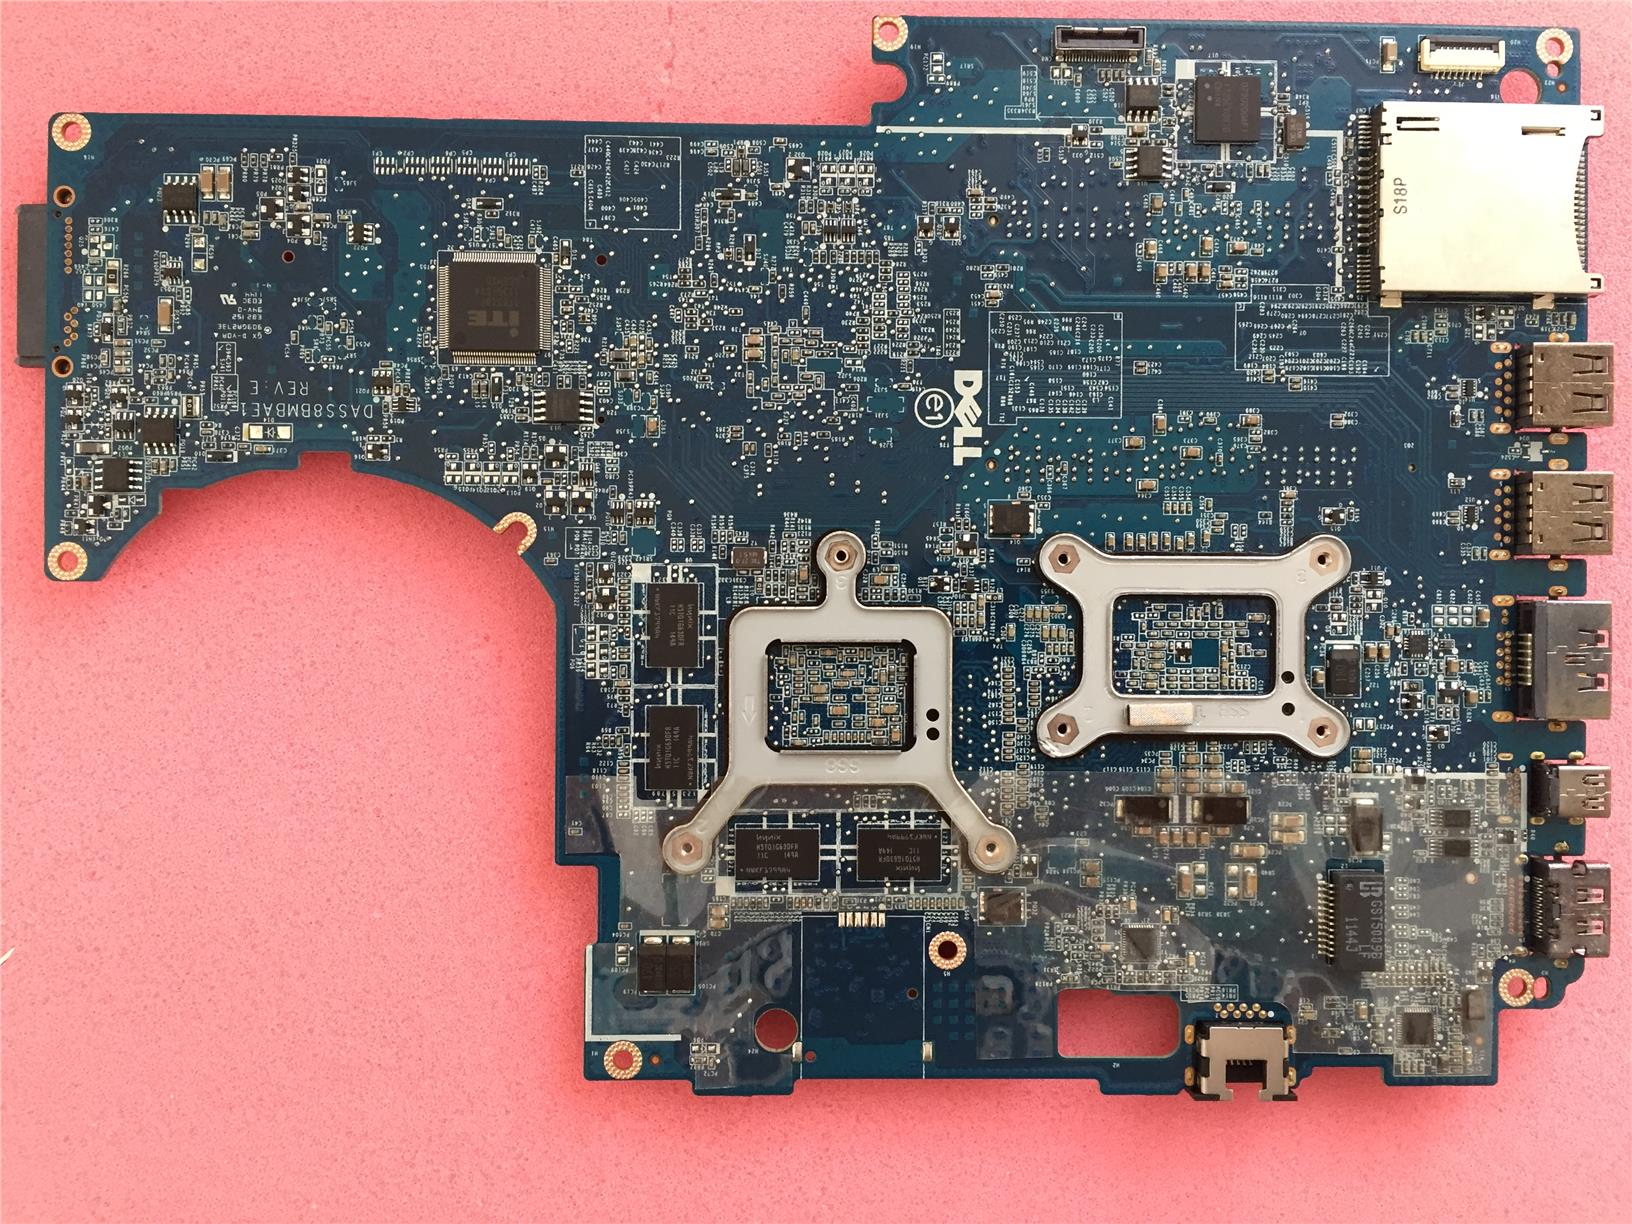 Dell XPS 15z Intel i-Core i7-2640m 2.8GHz CPU Laptop Motherboard 0CJ88